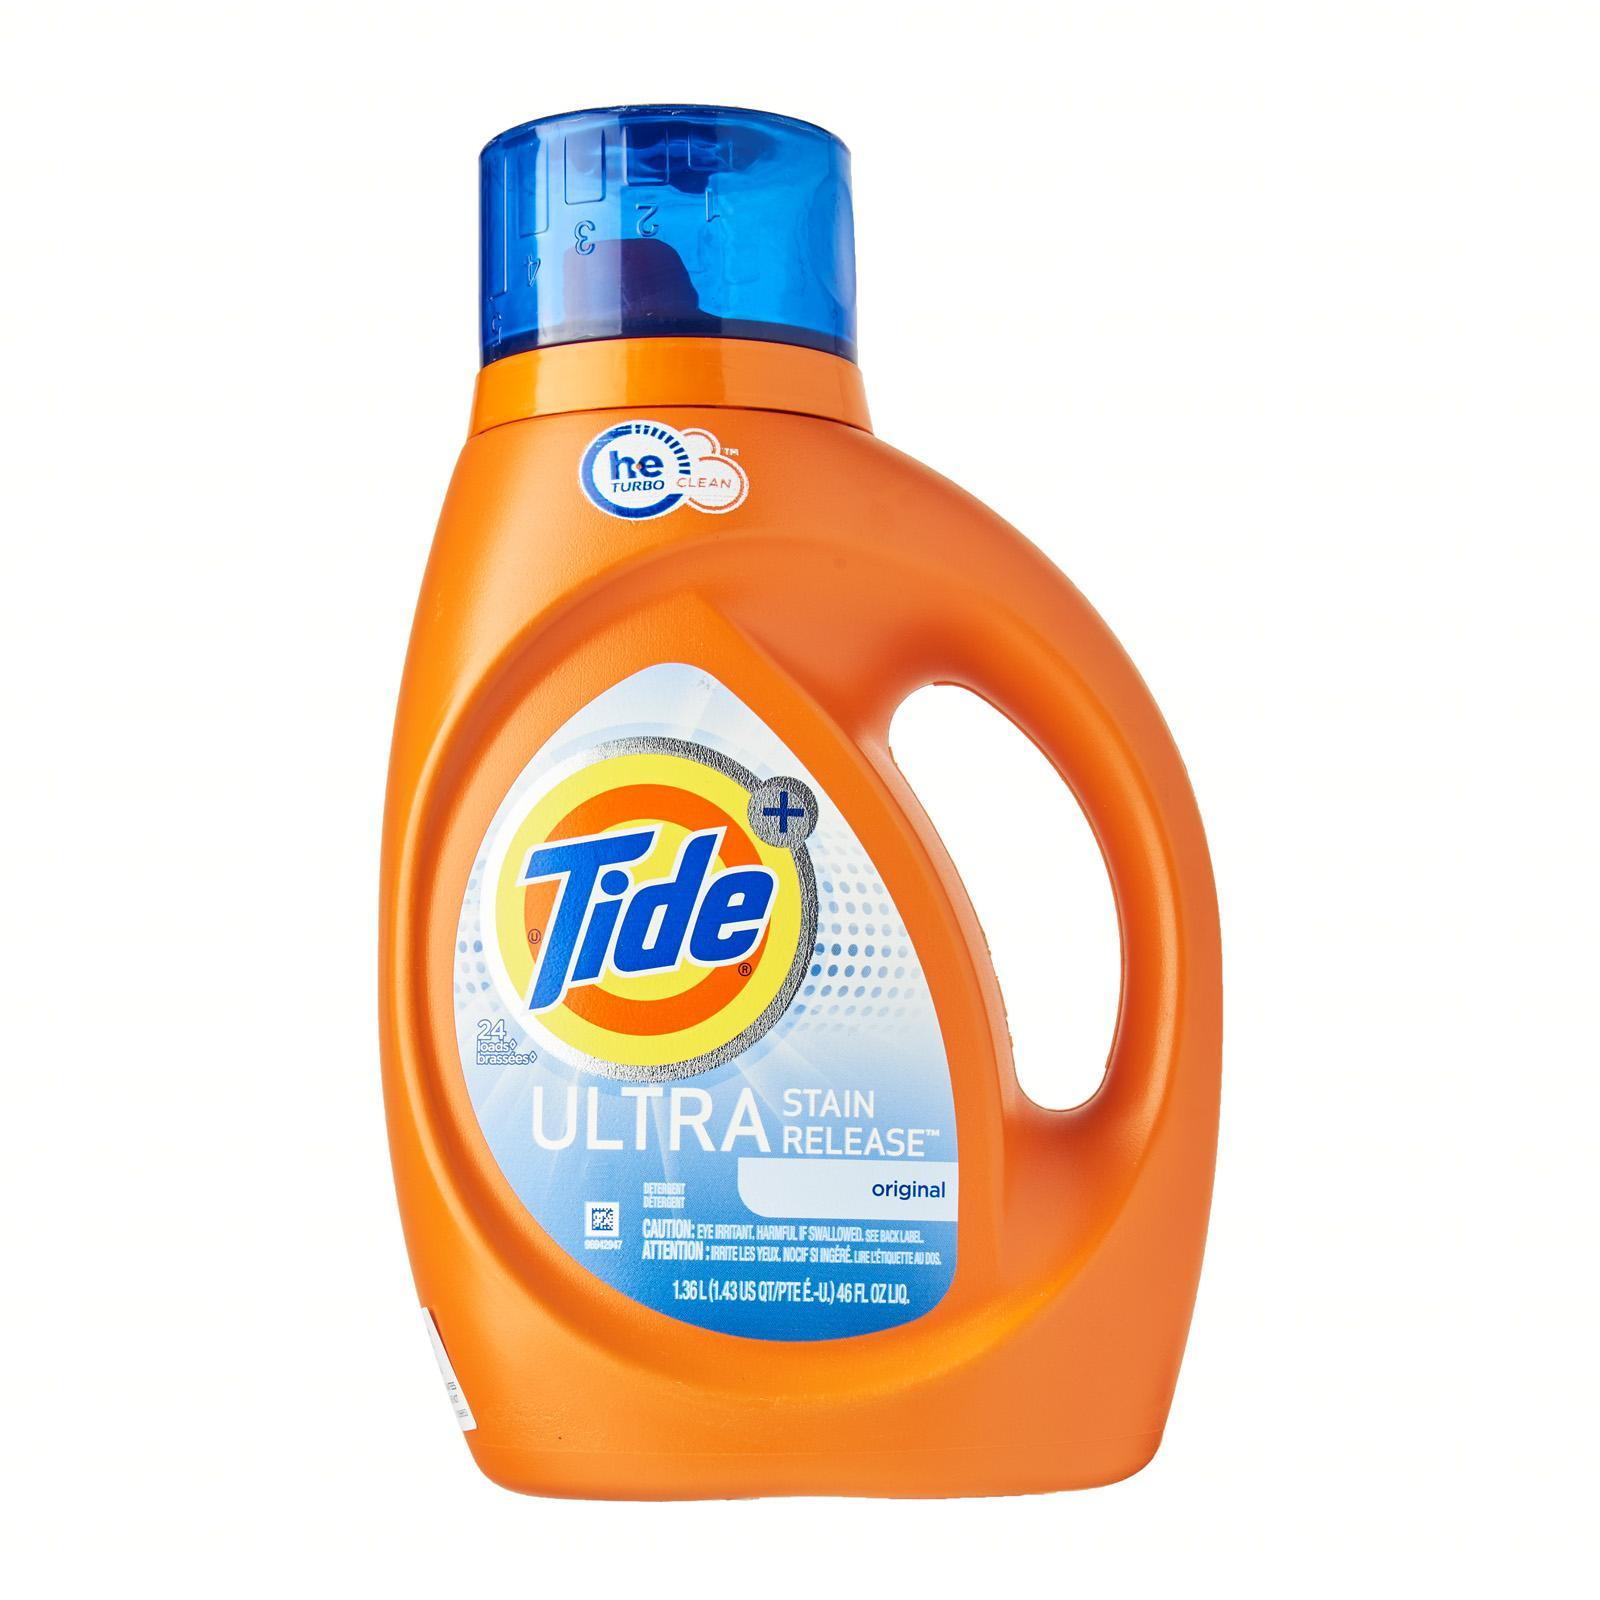 Tide Ultra Stain Release High Efficiency Liquid Laundry Detergent